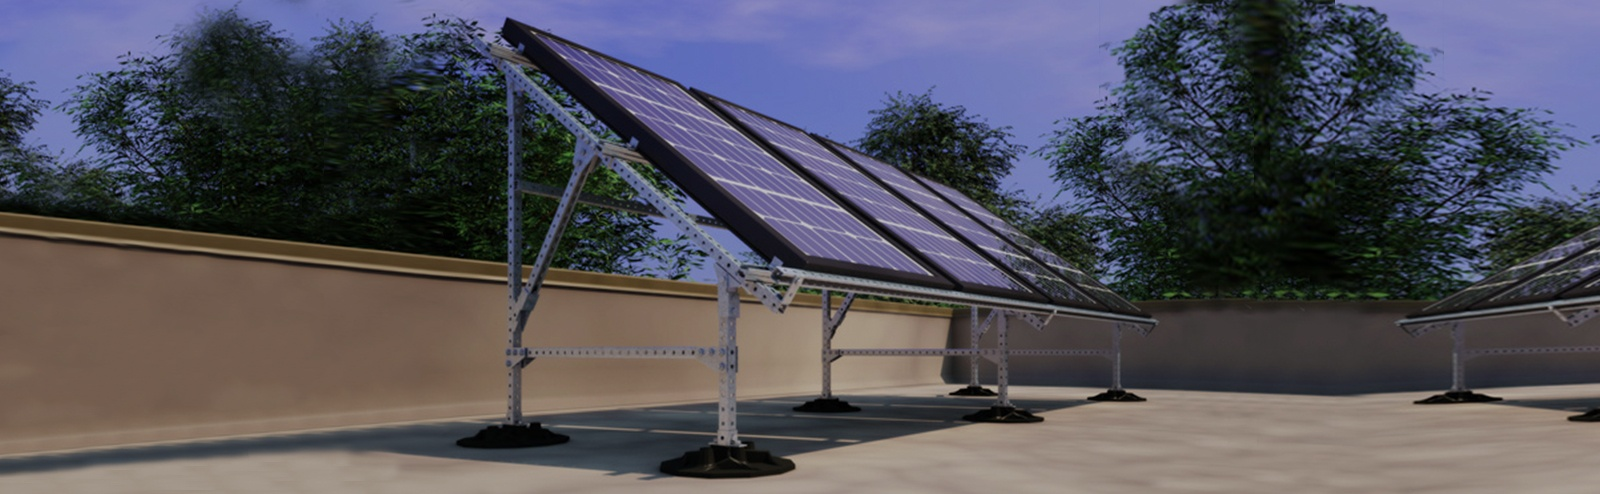 Rooftop Solar Panel Mounting Systems & Commercial Rooftop Solar Panel Mounting Systems